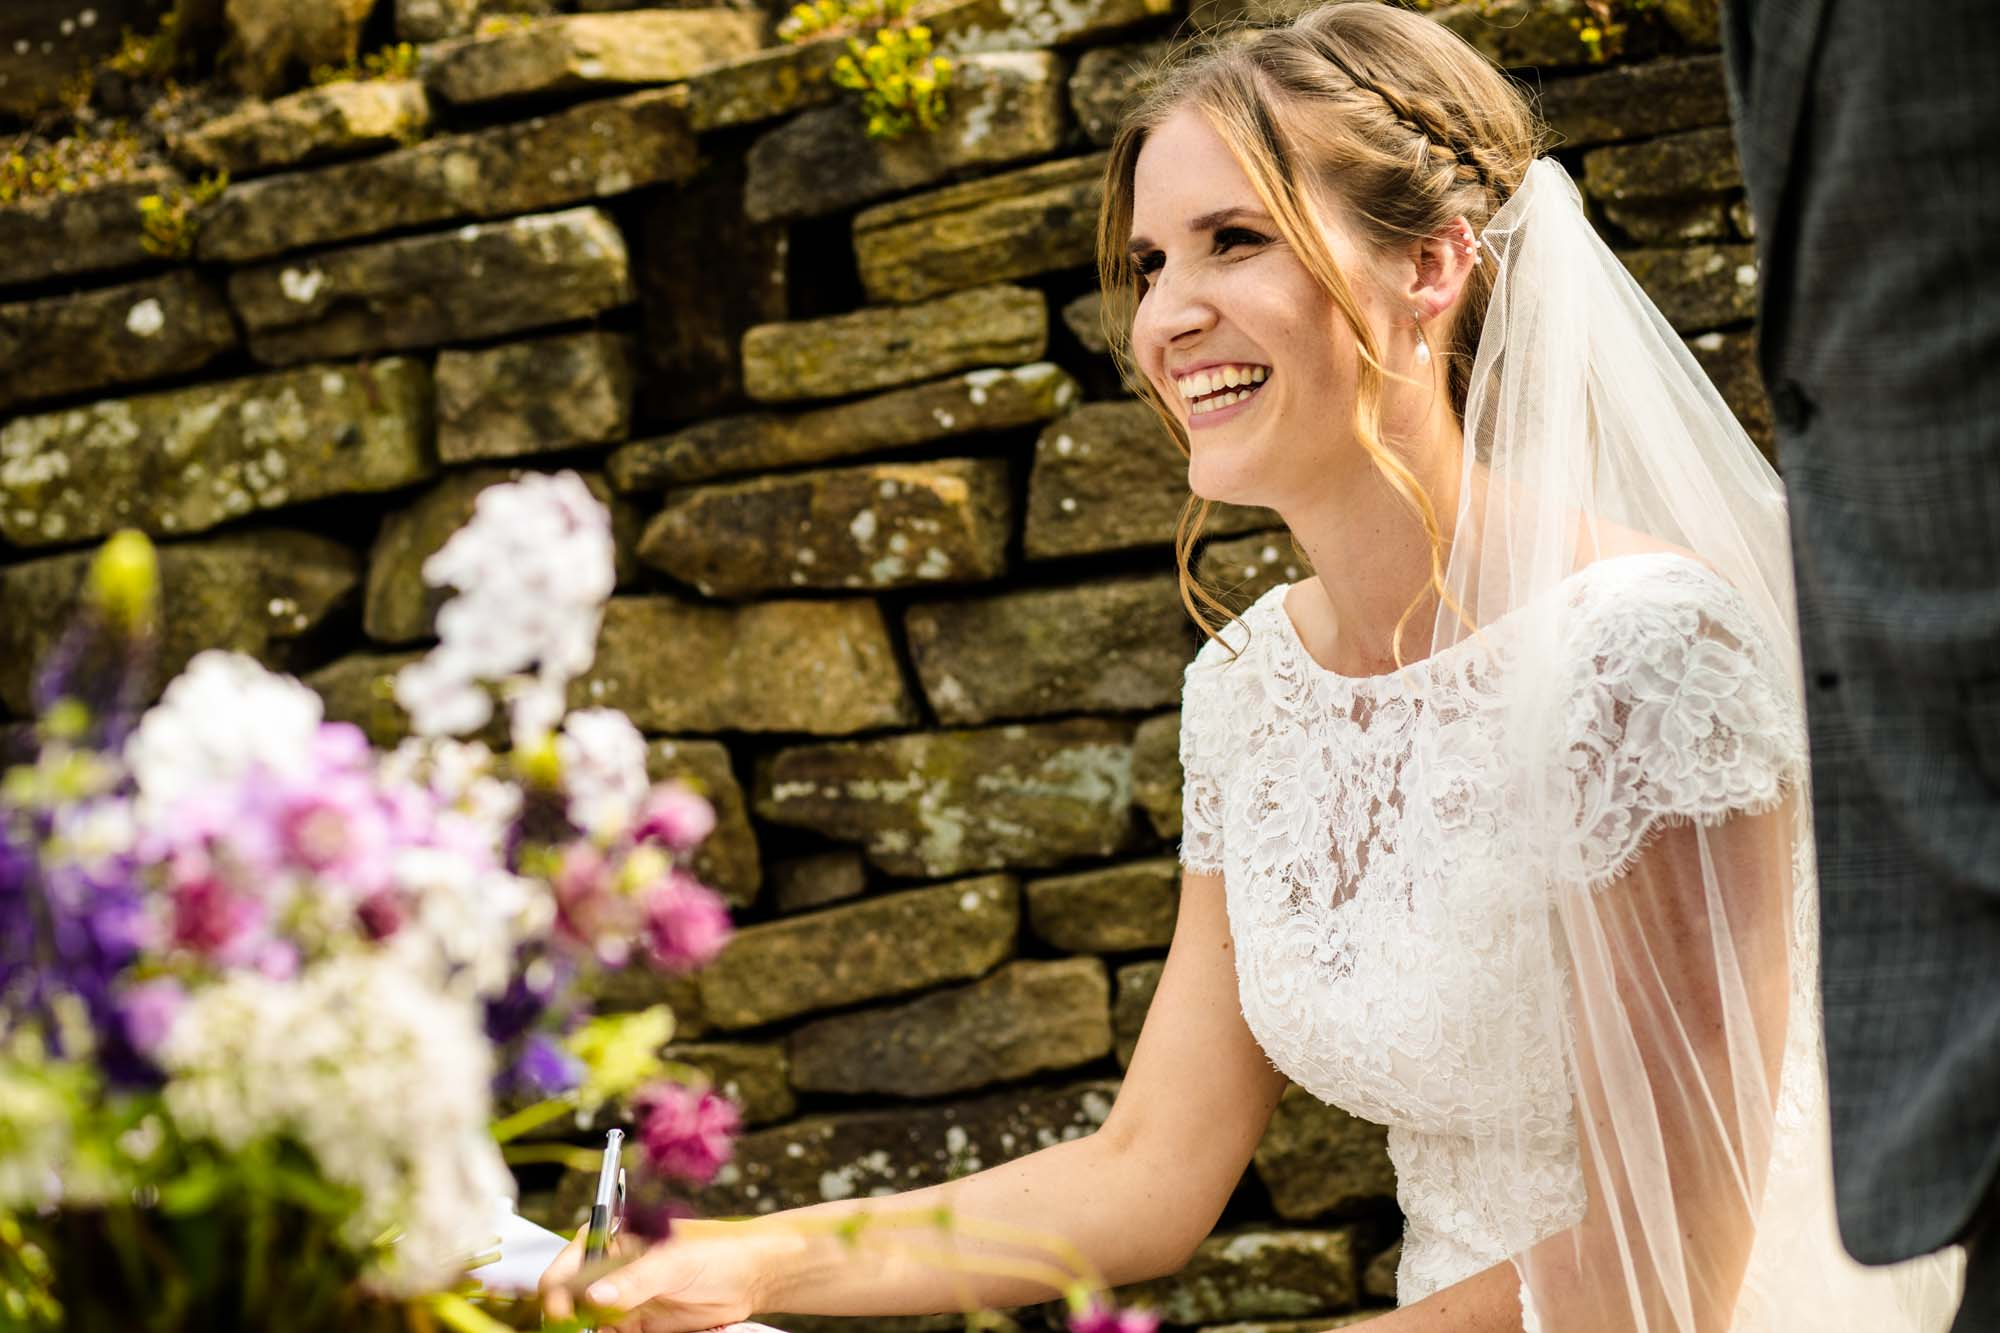 Thornsett Fields Farm Wedding Ceremonies